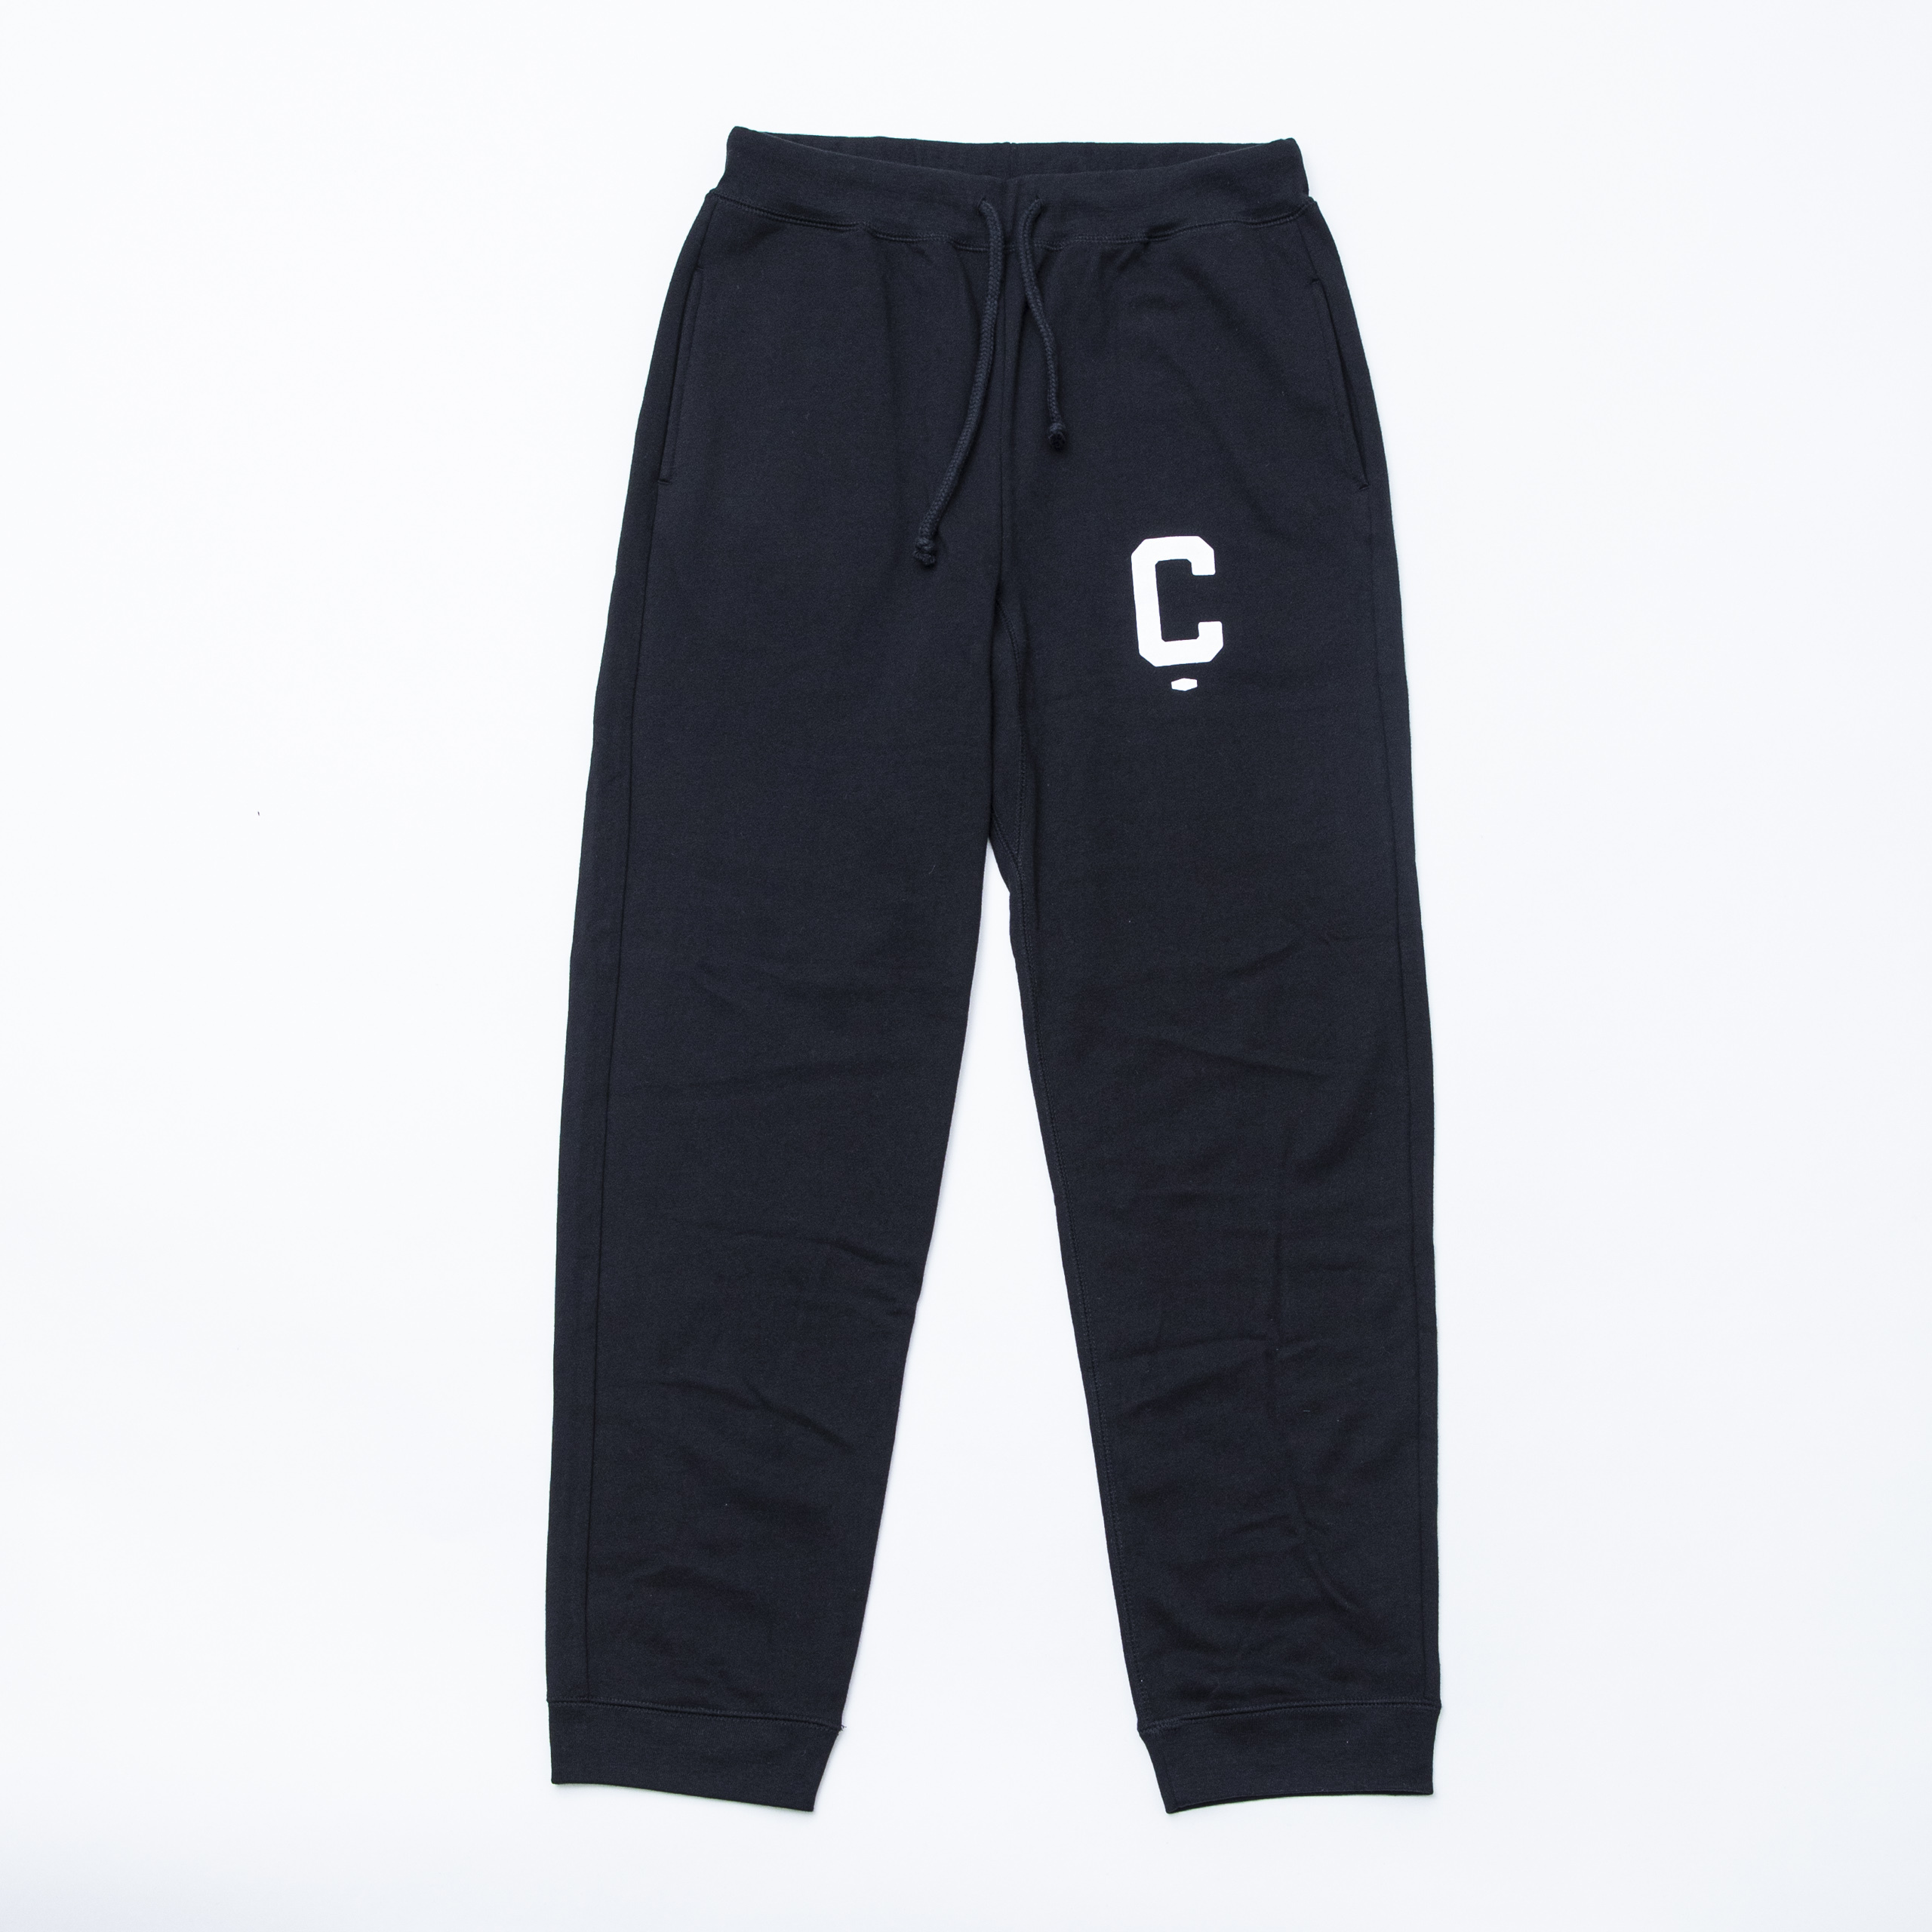 Big C Sweat pants BLACK